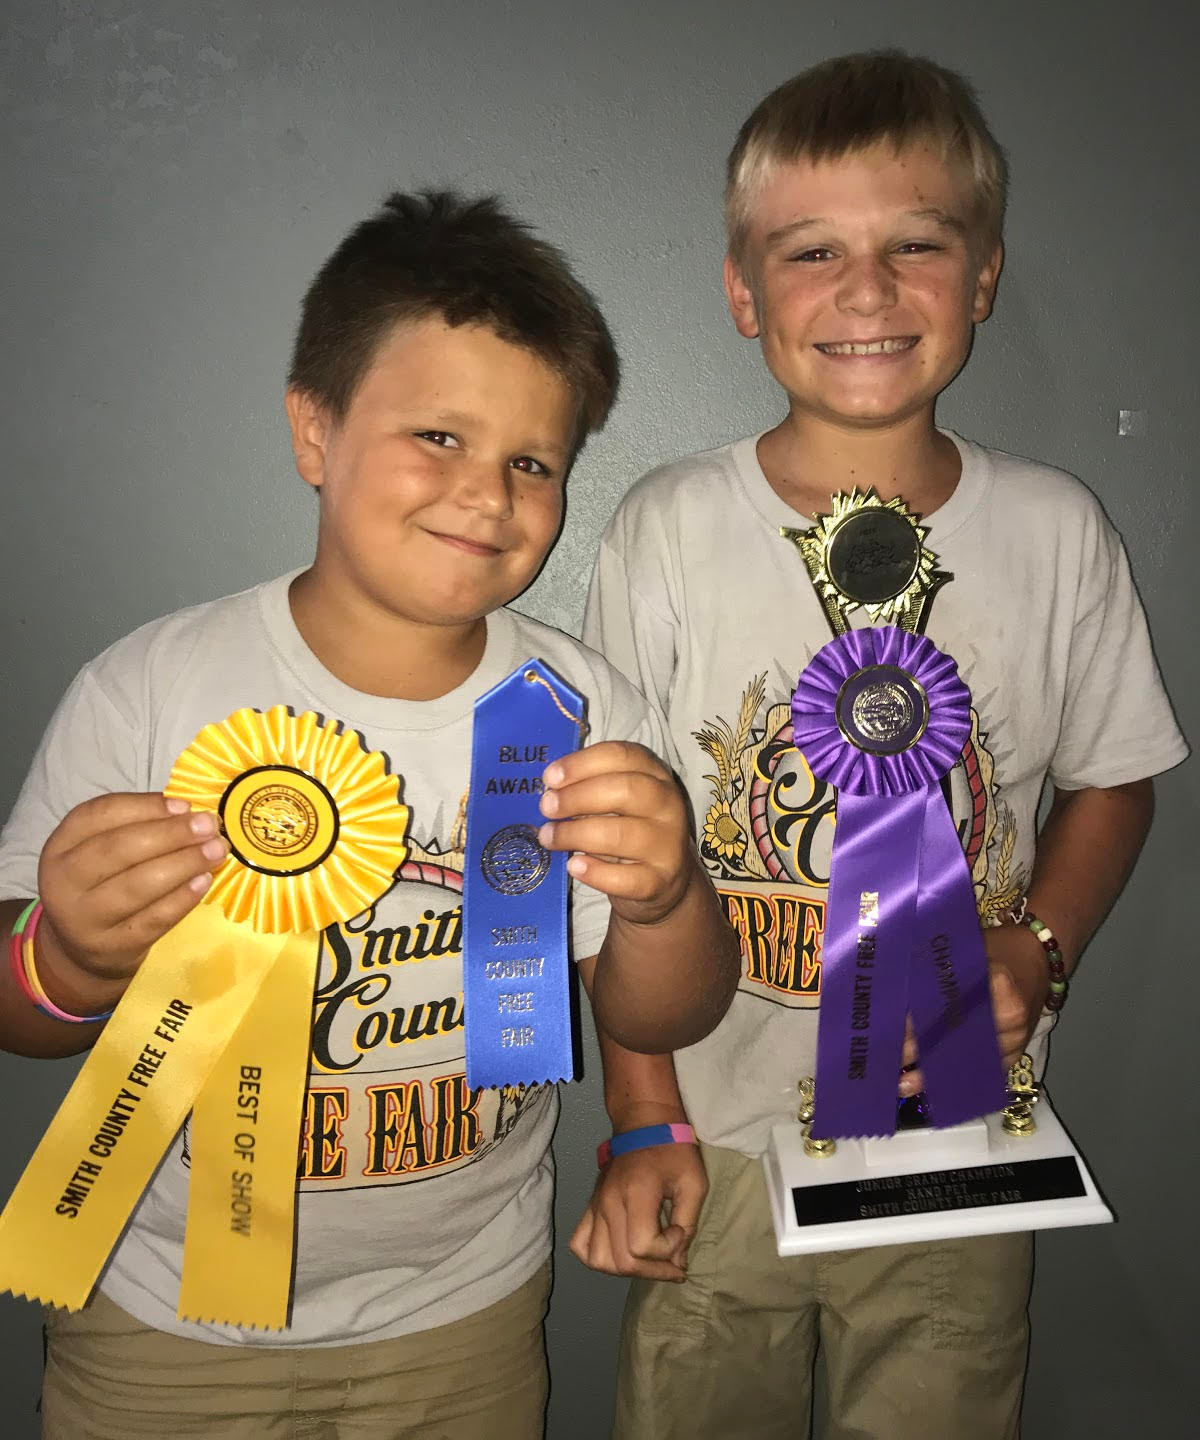 Lucas and Levi Barnes awards in Handpets